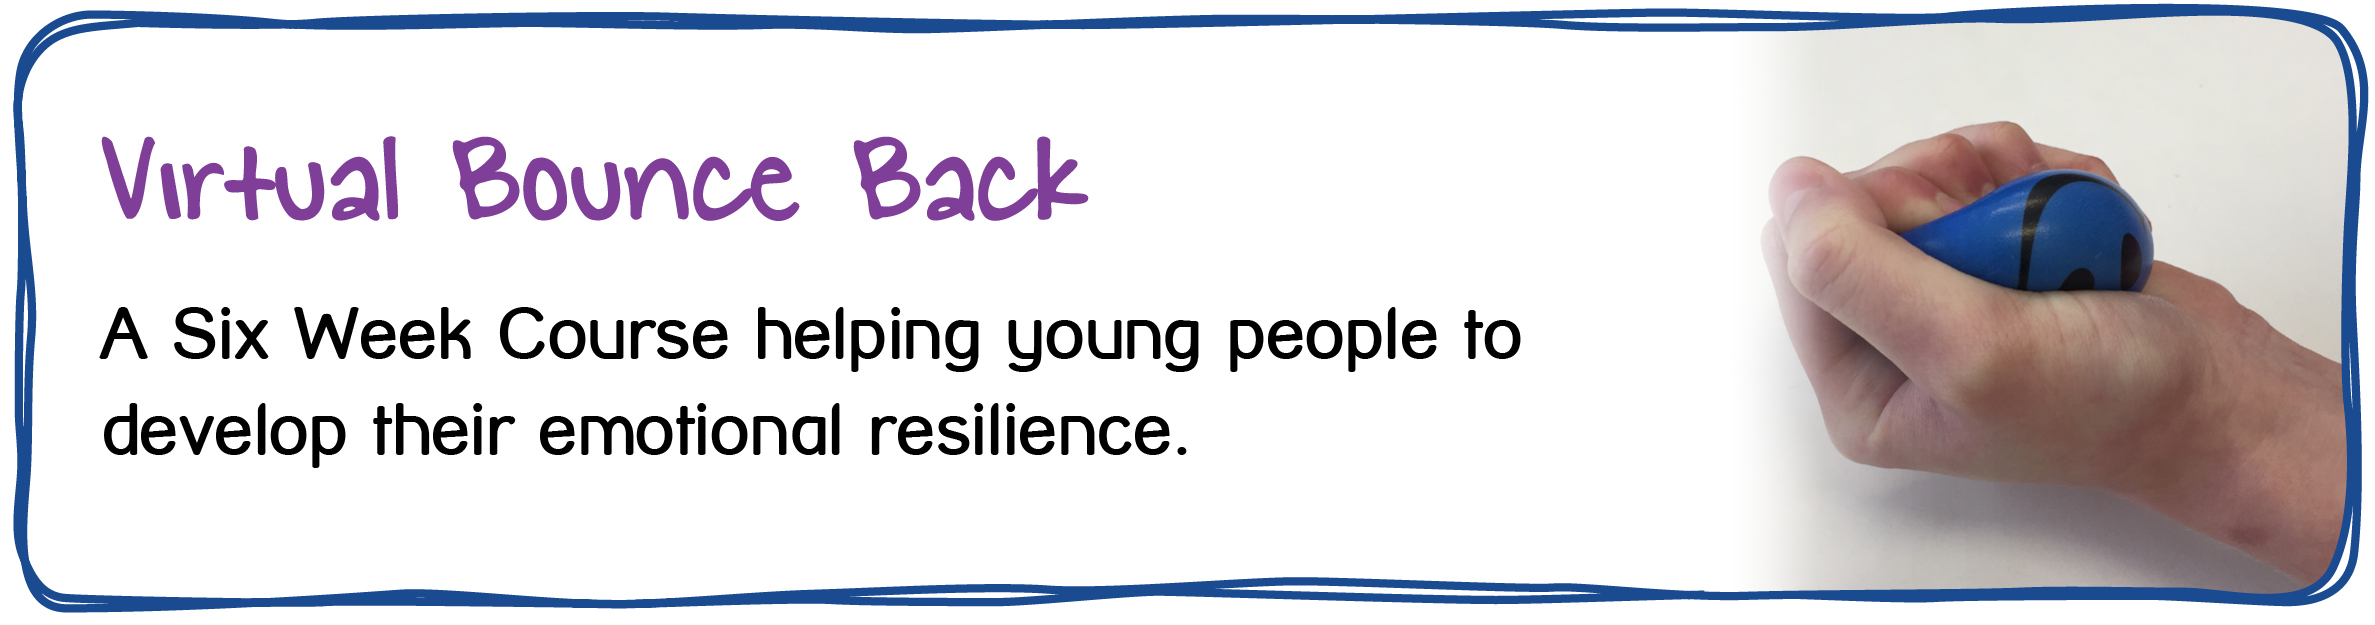 Virtual Bounce Back. A Six Week Course helping young people to develop their emotional resilience.